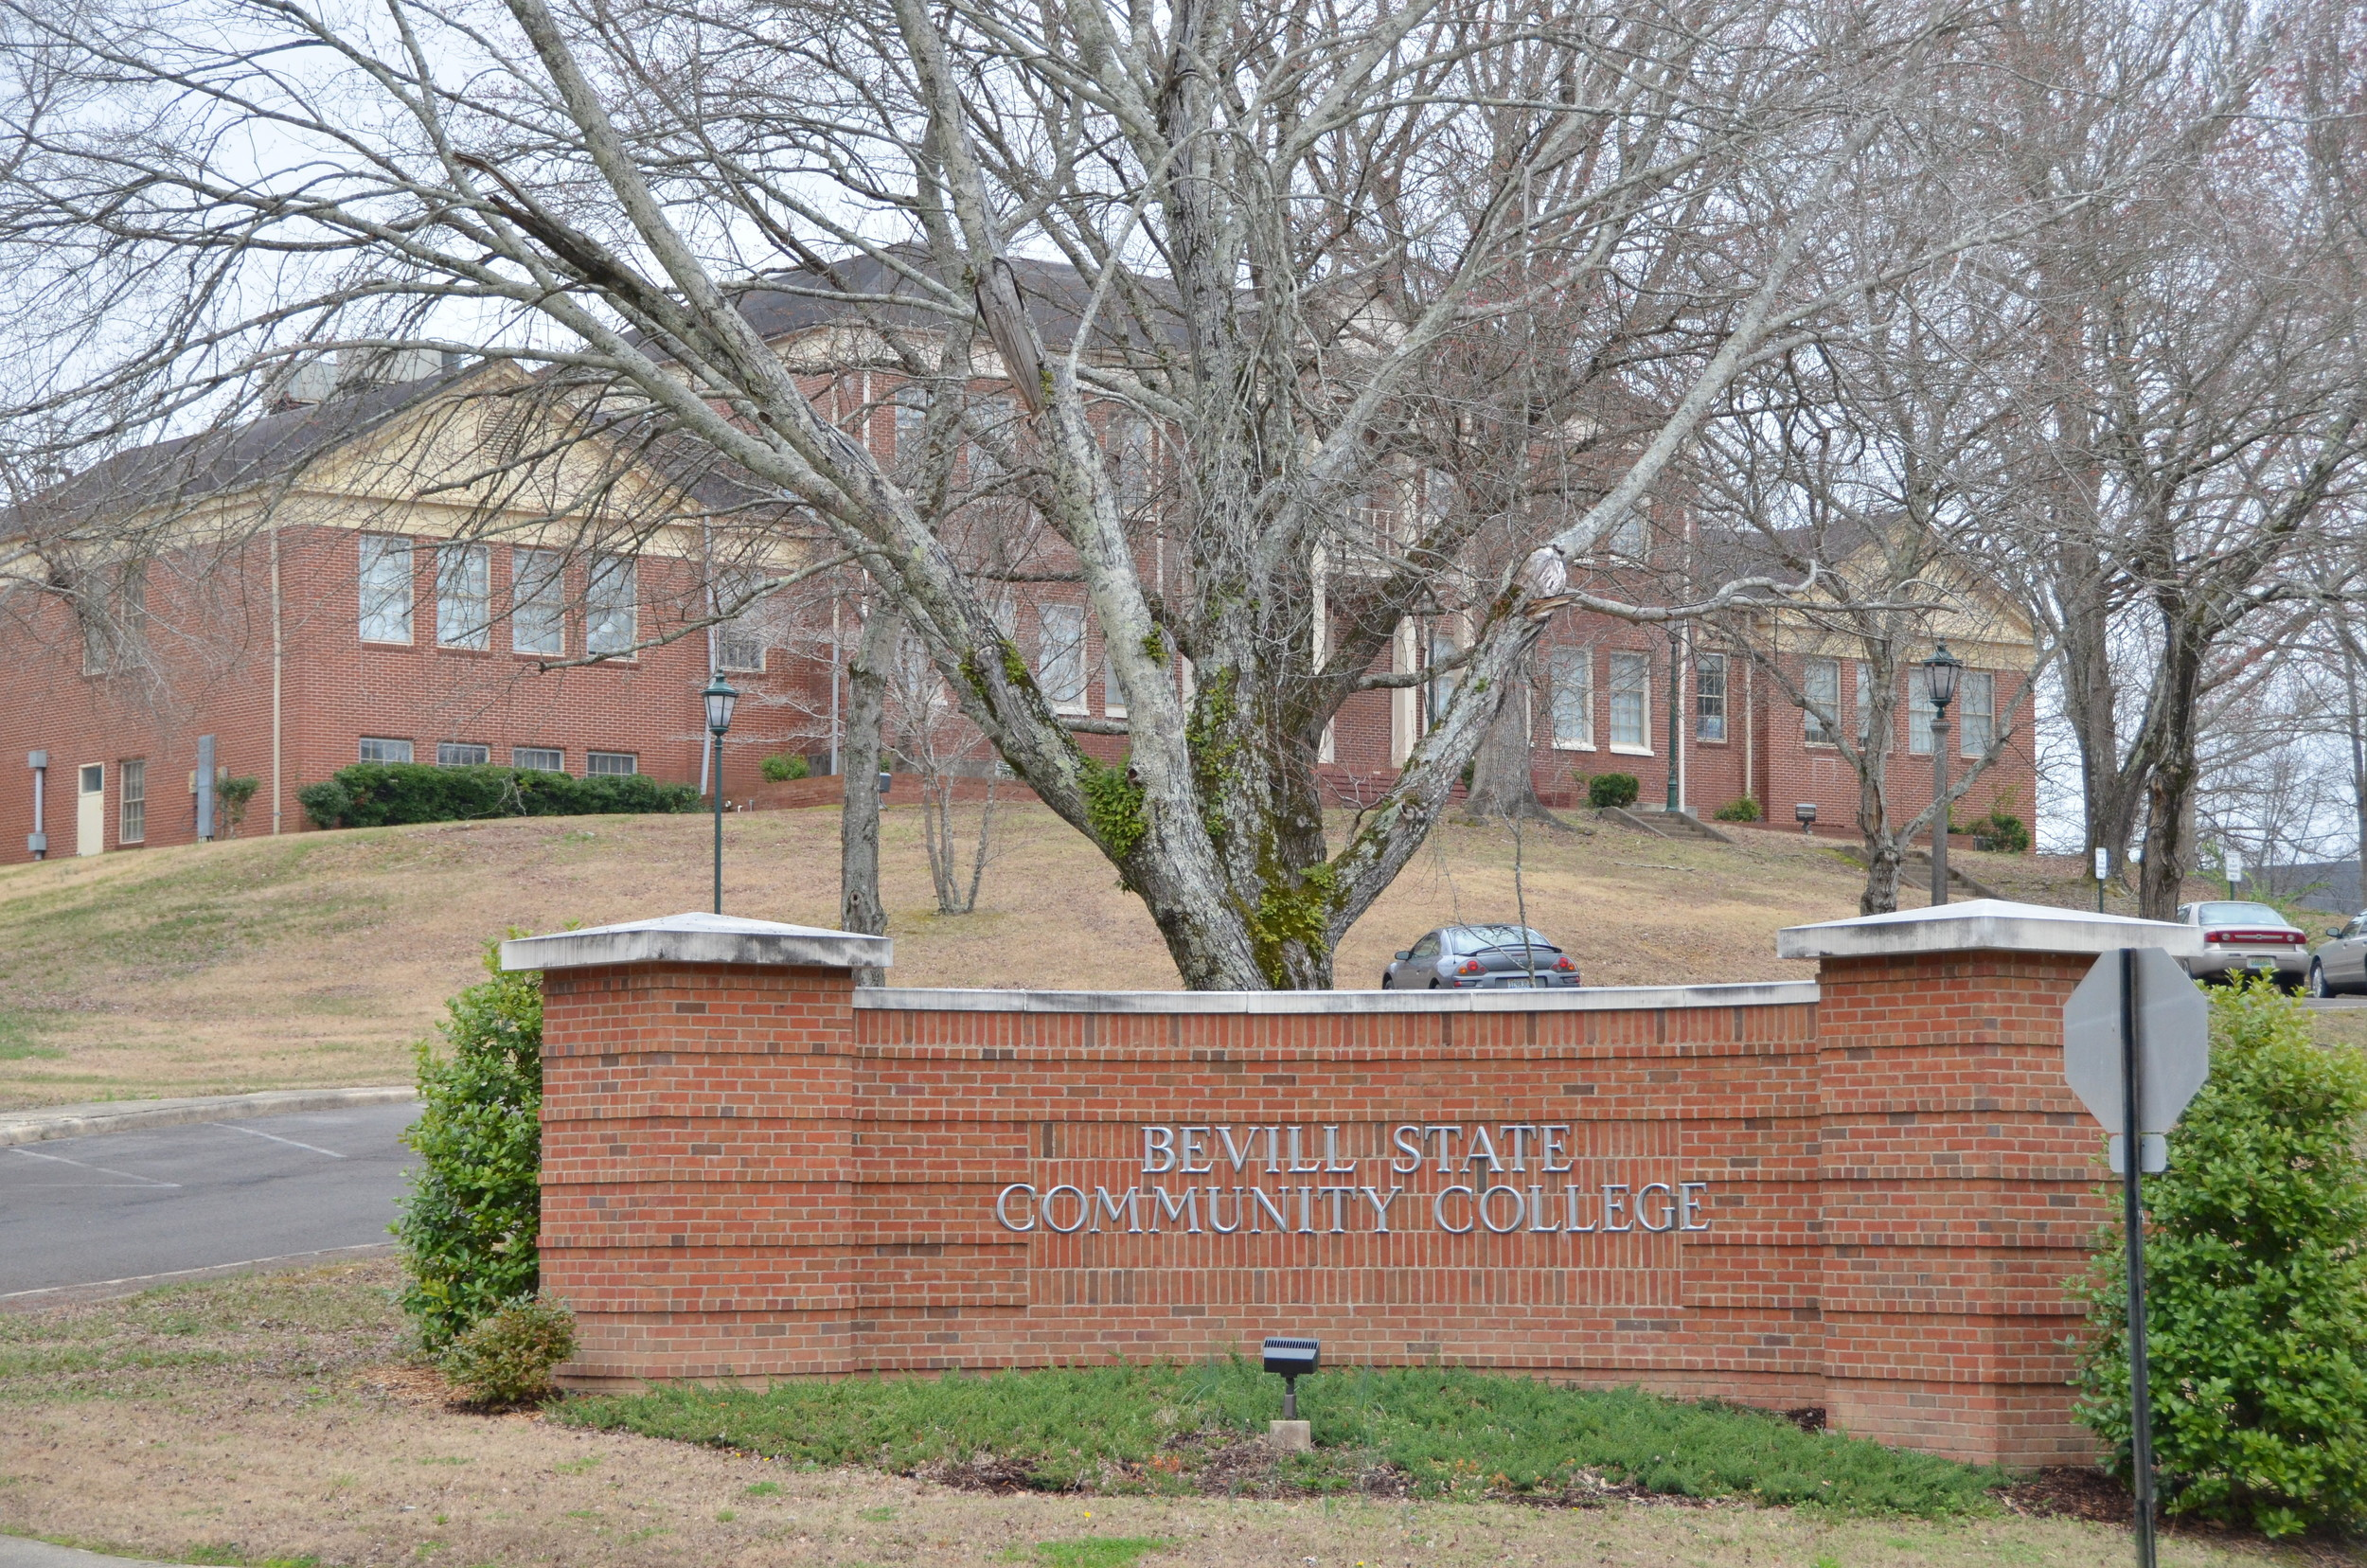 Bevill State Community College in Jasper was just awarded a $1.92 million grant to funda new training center  that will serve as a regional workforce training and job placement hub in northwest Alabama.  Daily Mountain Eagle - Ron Harris